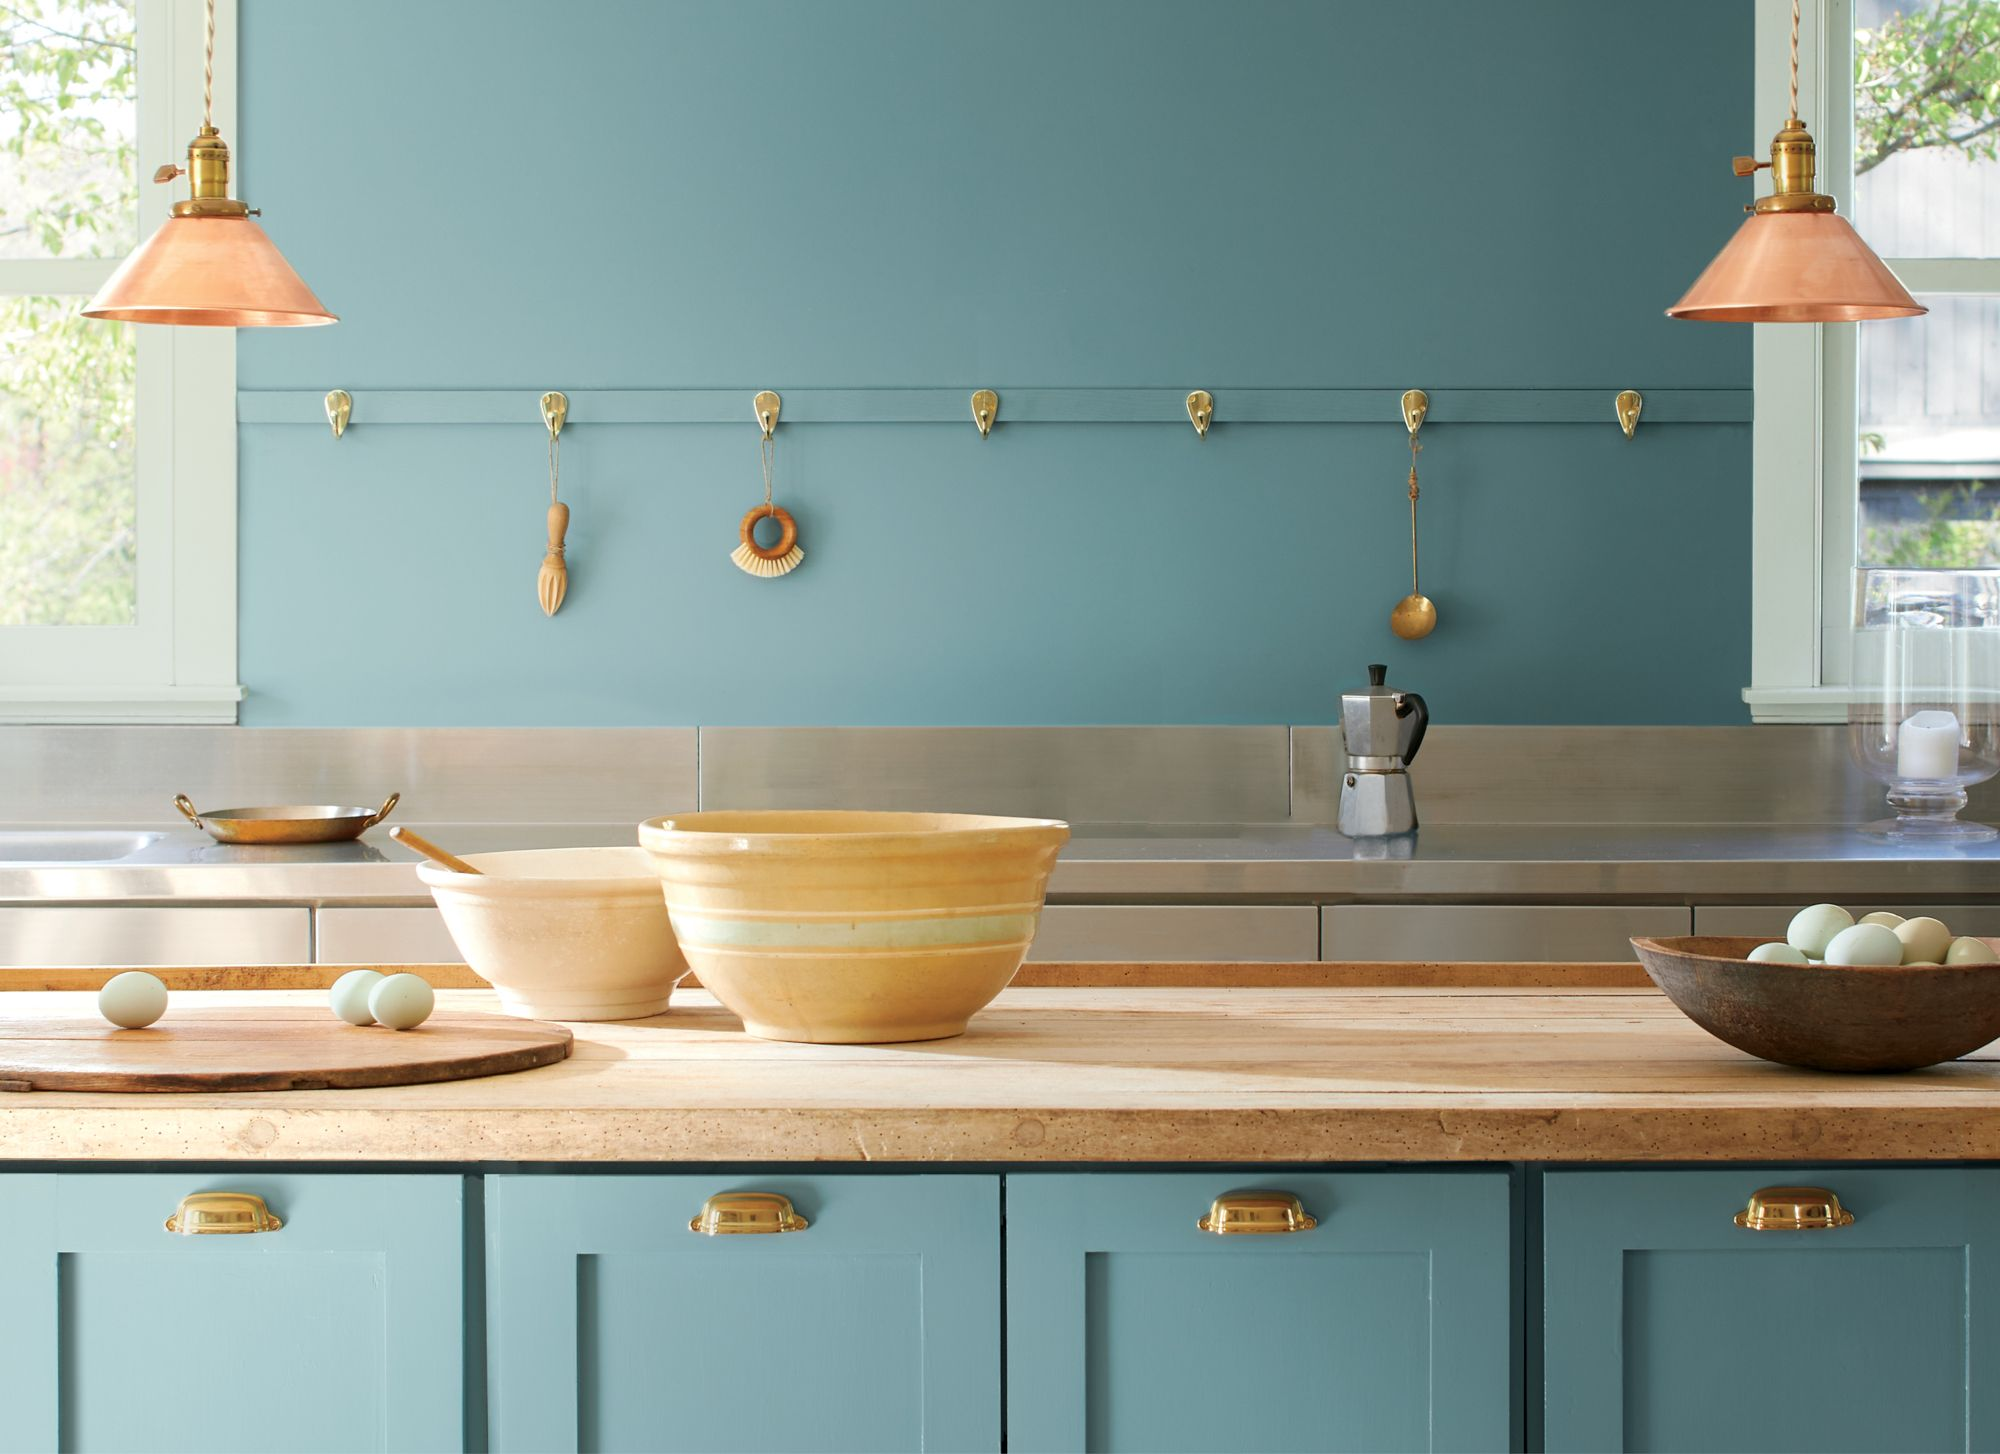 Benjamin Moore Paint Colour Of The Year For 2021 Aegean Teal